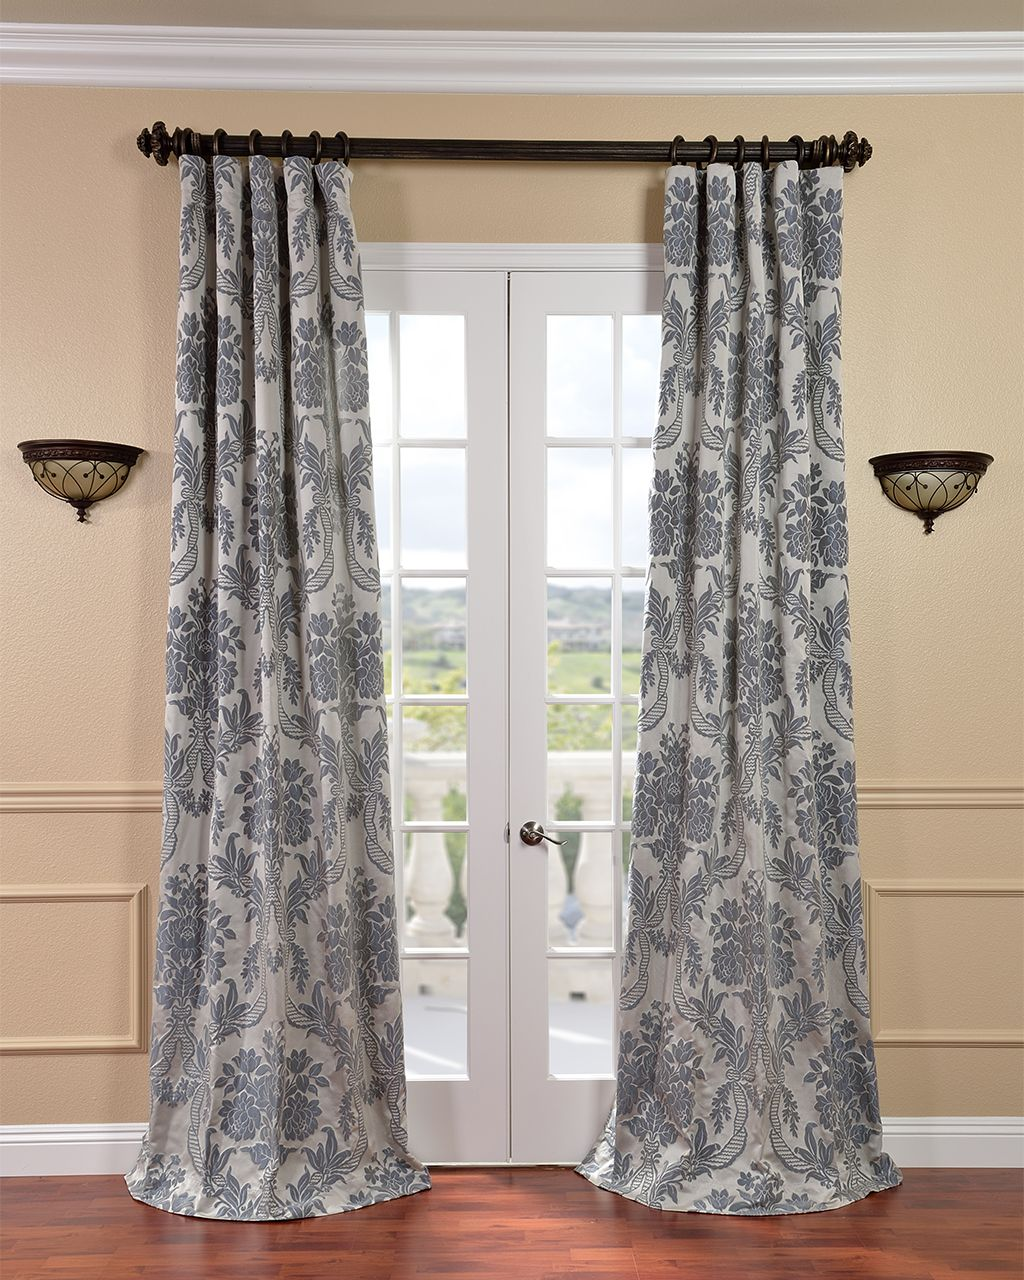 These Striking Silver Faux Silk Curtains Will Bring A Touch Of Luxury Into Your Home